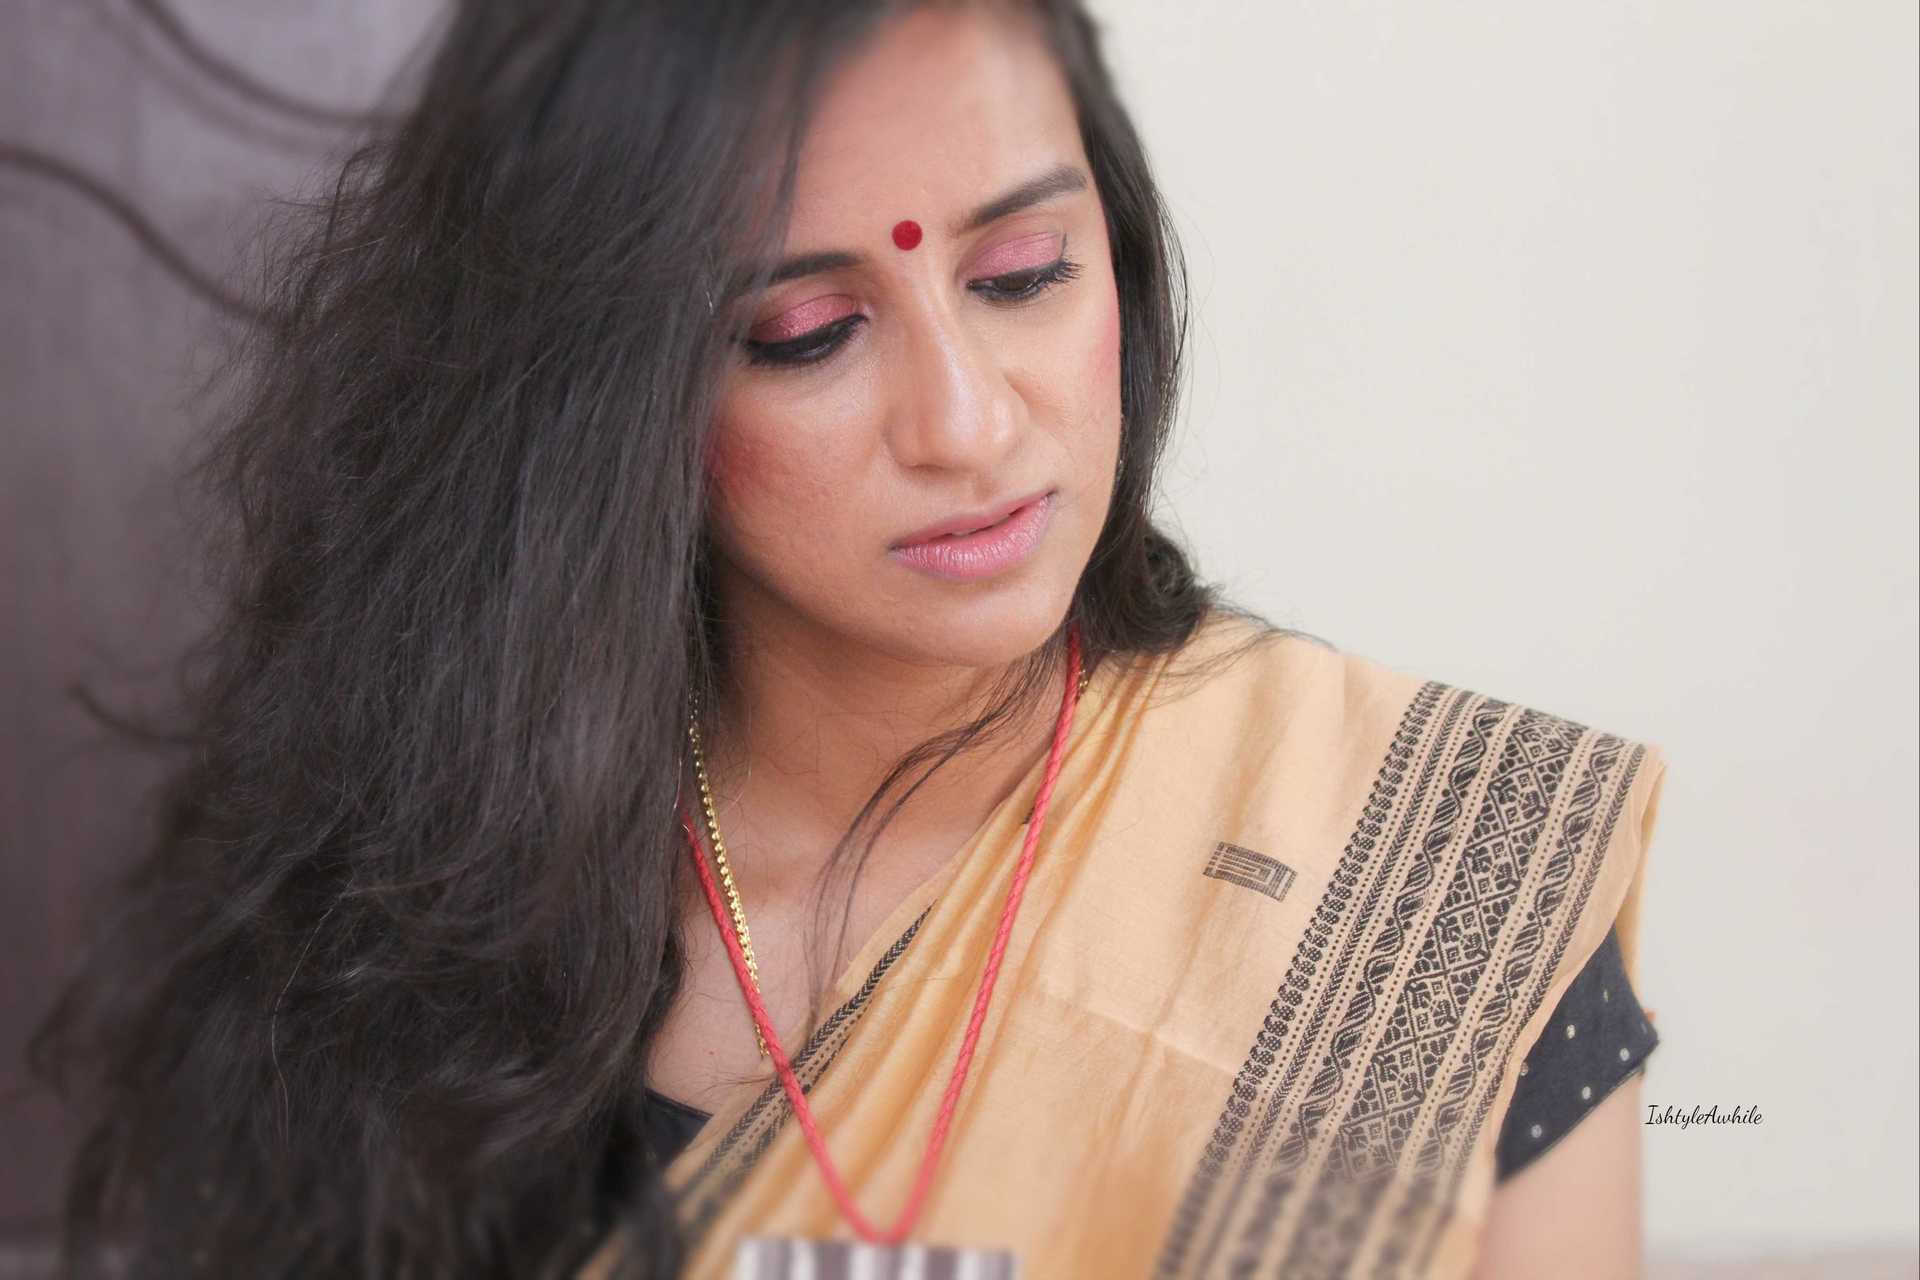 IshtyleAwhile - burgandy makeup look chennai beauty blogger